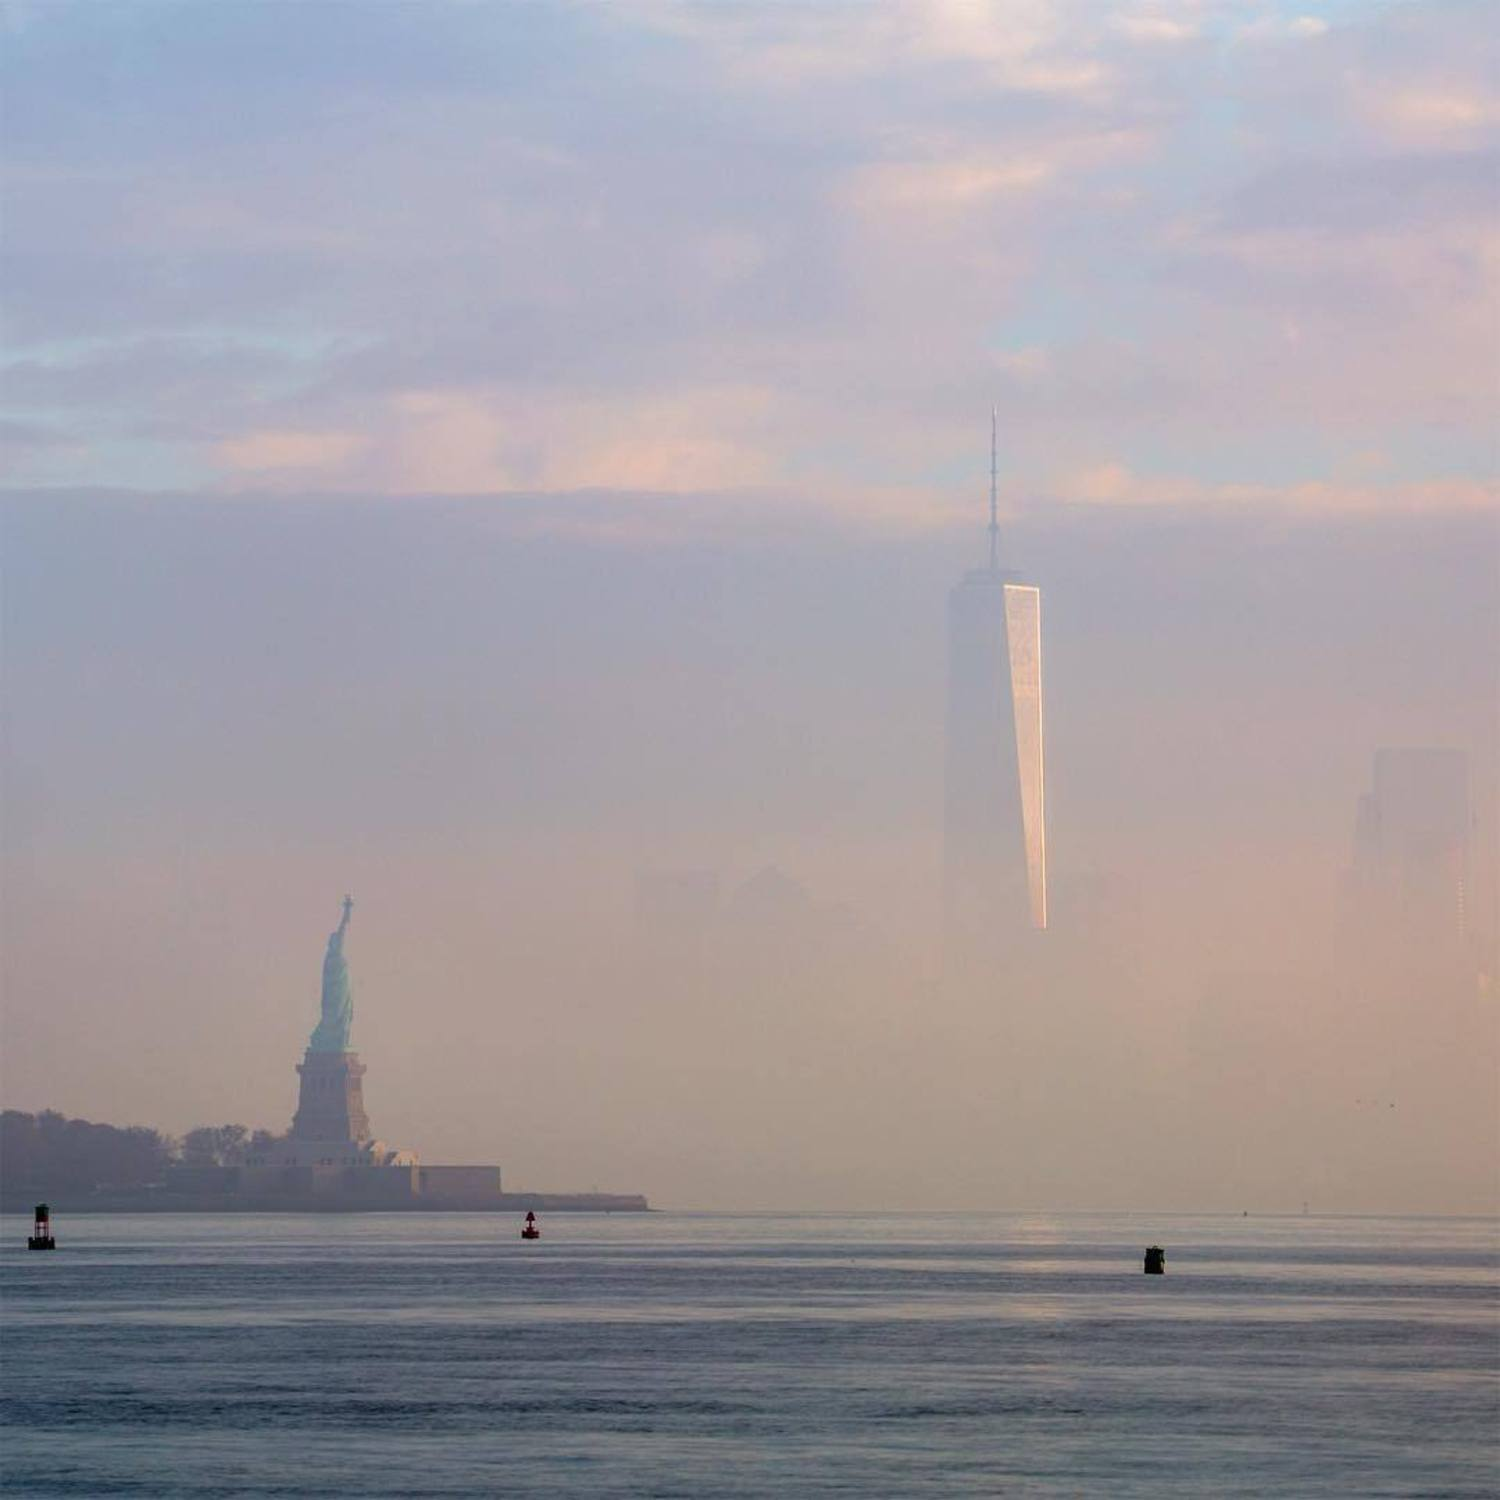 New York Harbor, Statue of Liberty, and One World Trade Center